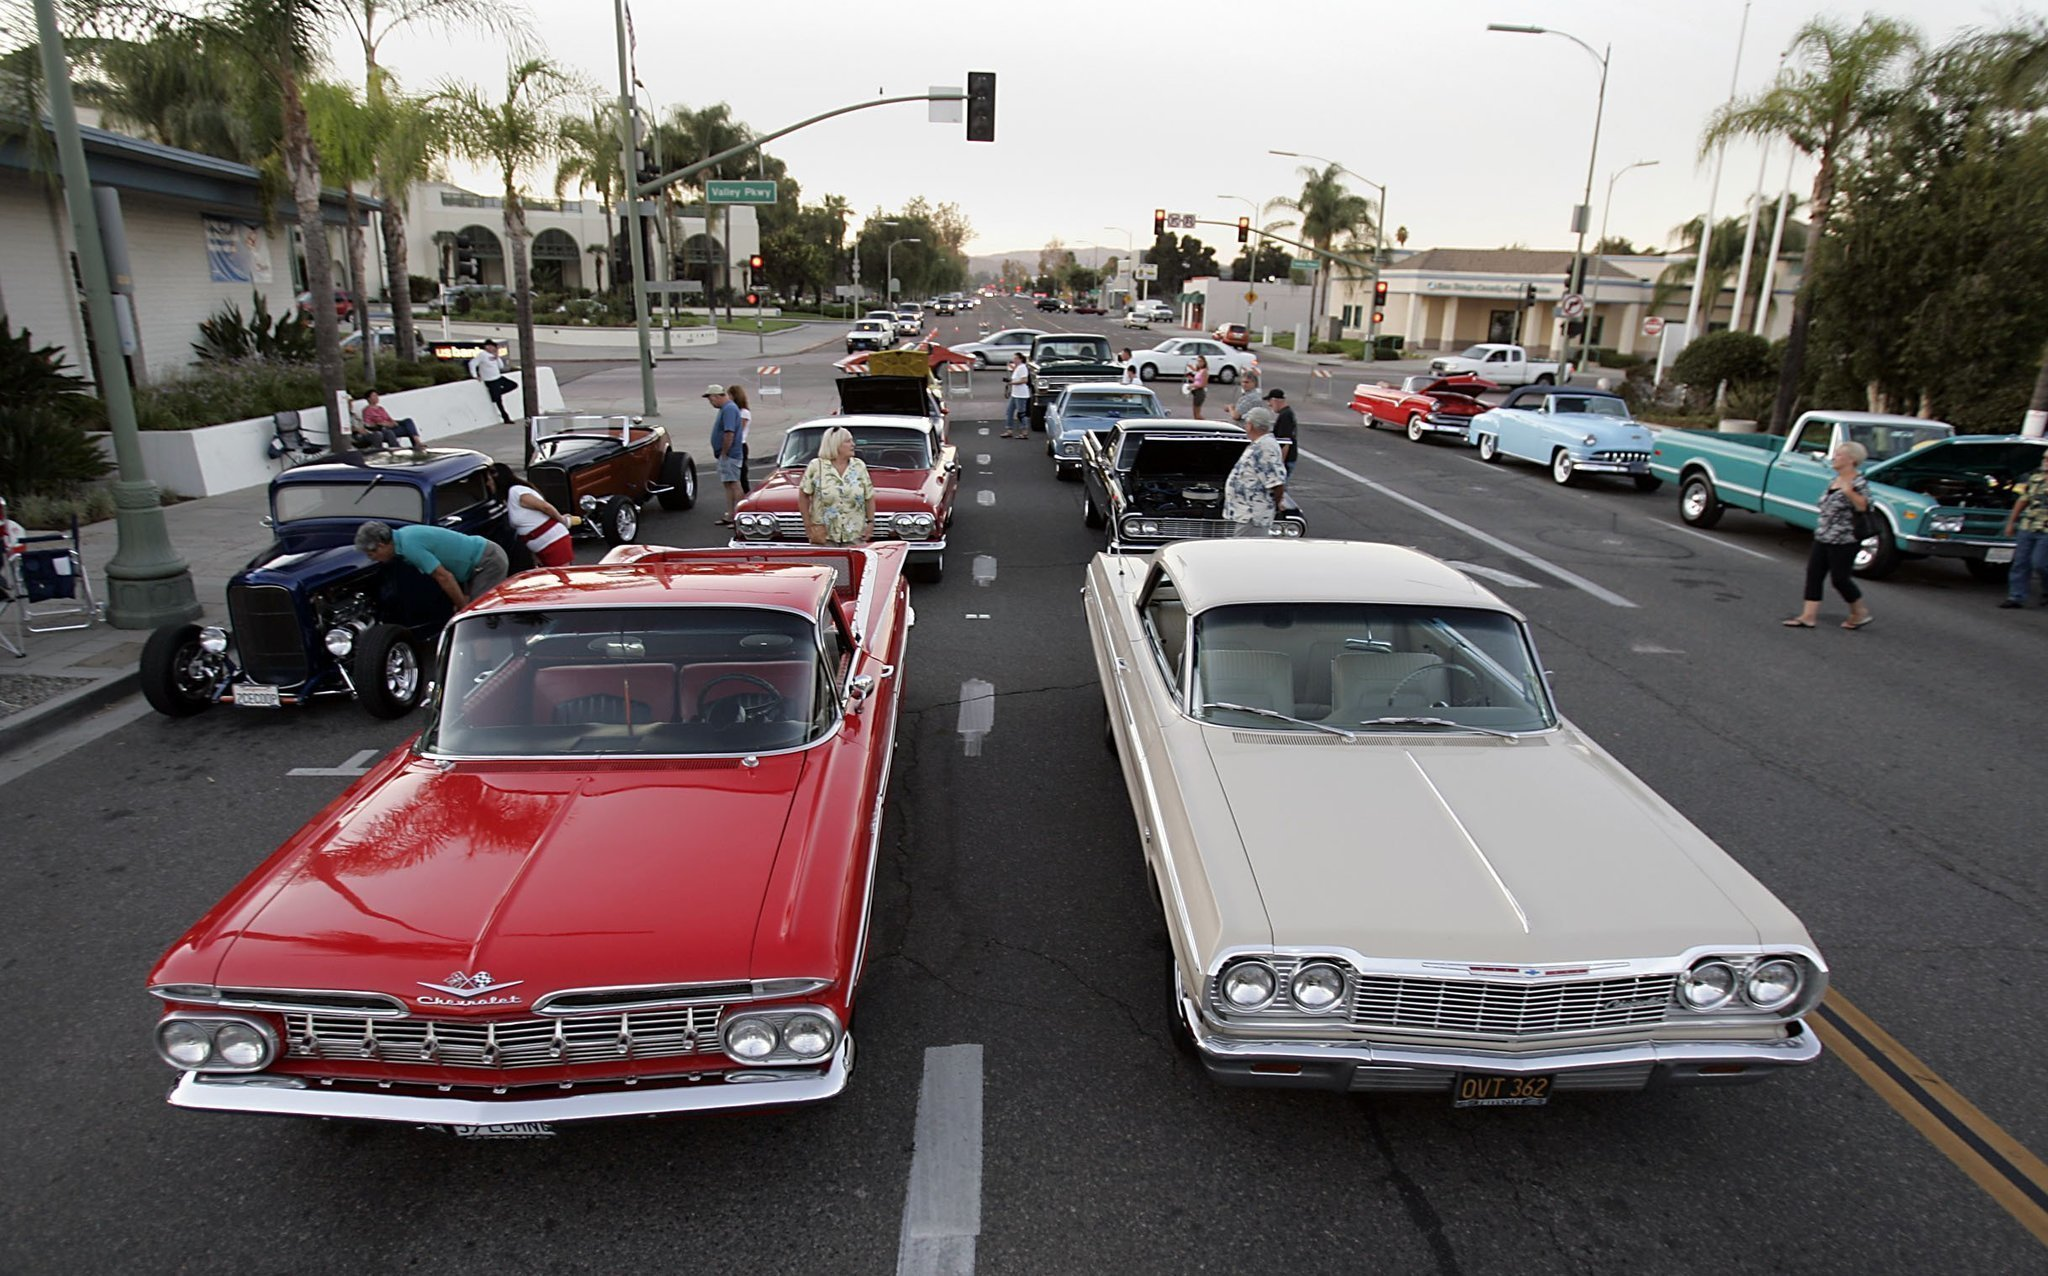 Vintage cars return for downtown cruise - The San Diego Union-Tribune